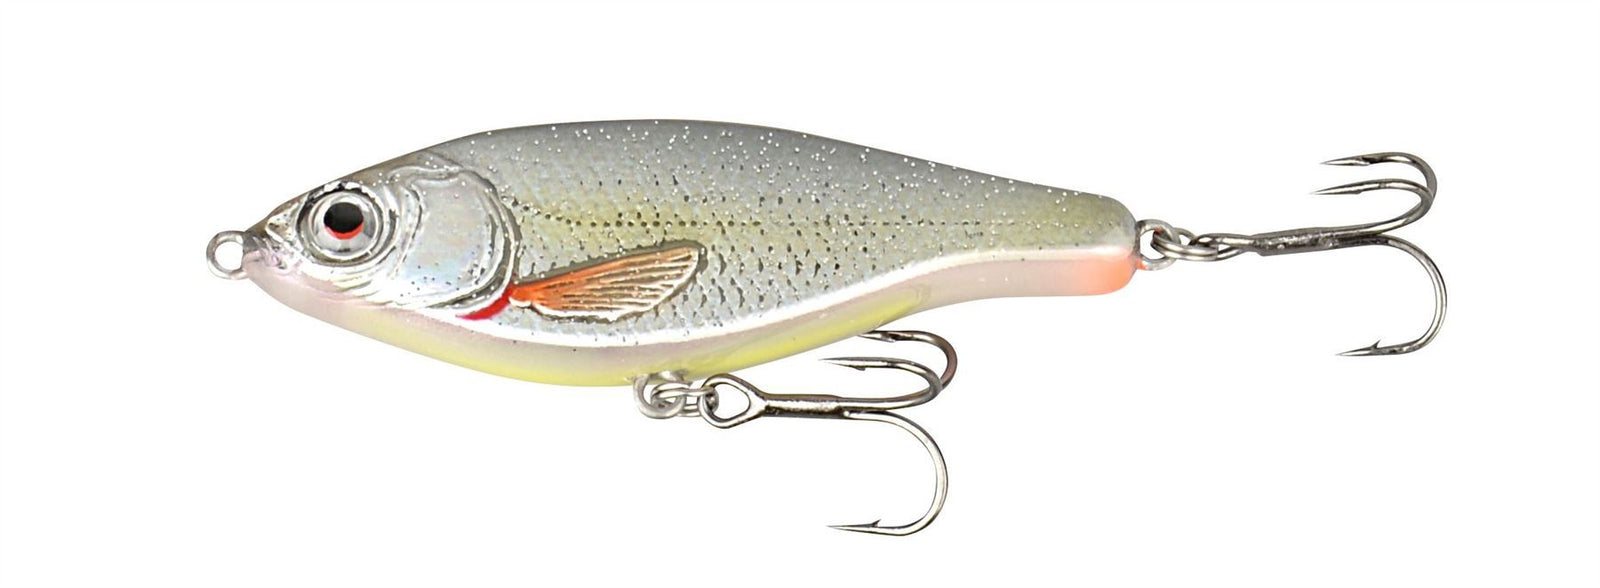 SAVAGE GEAR 3D Roach Jerkster 63 6.3cm 8g SS 01-Roach lure - reid outdoors